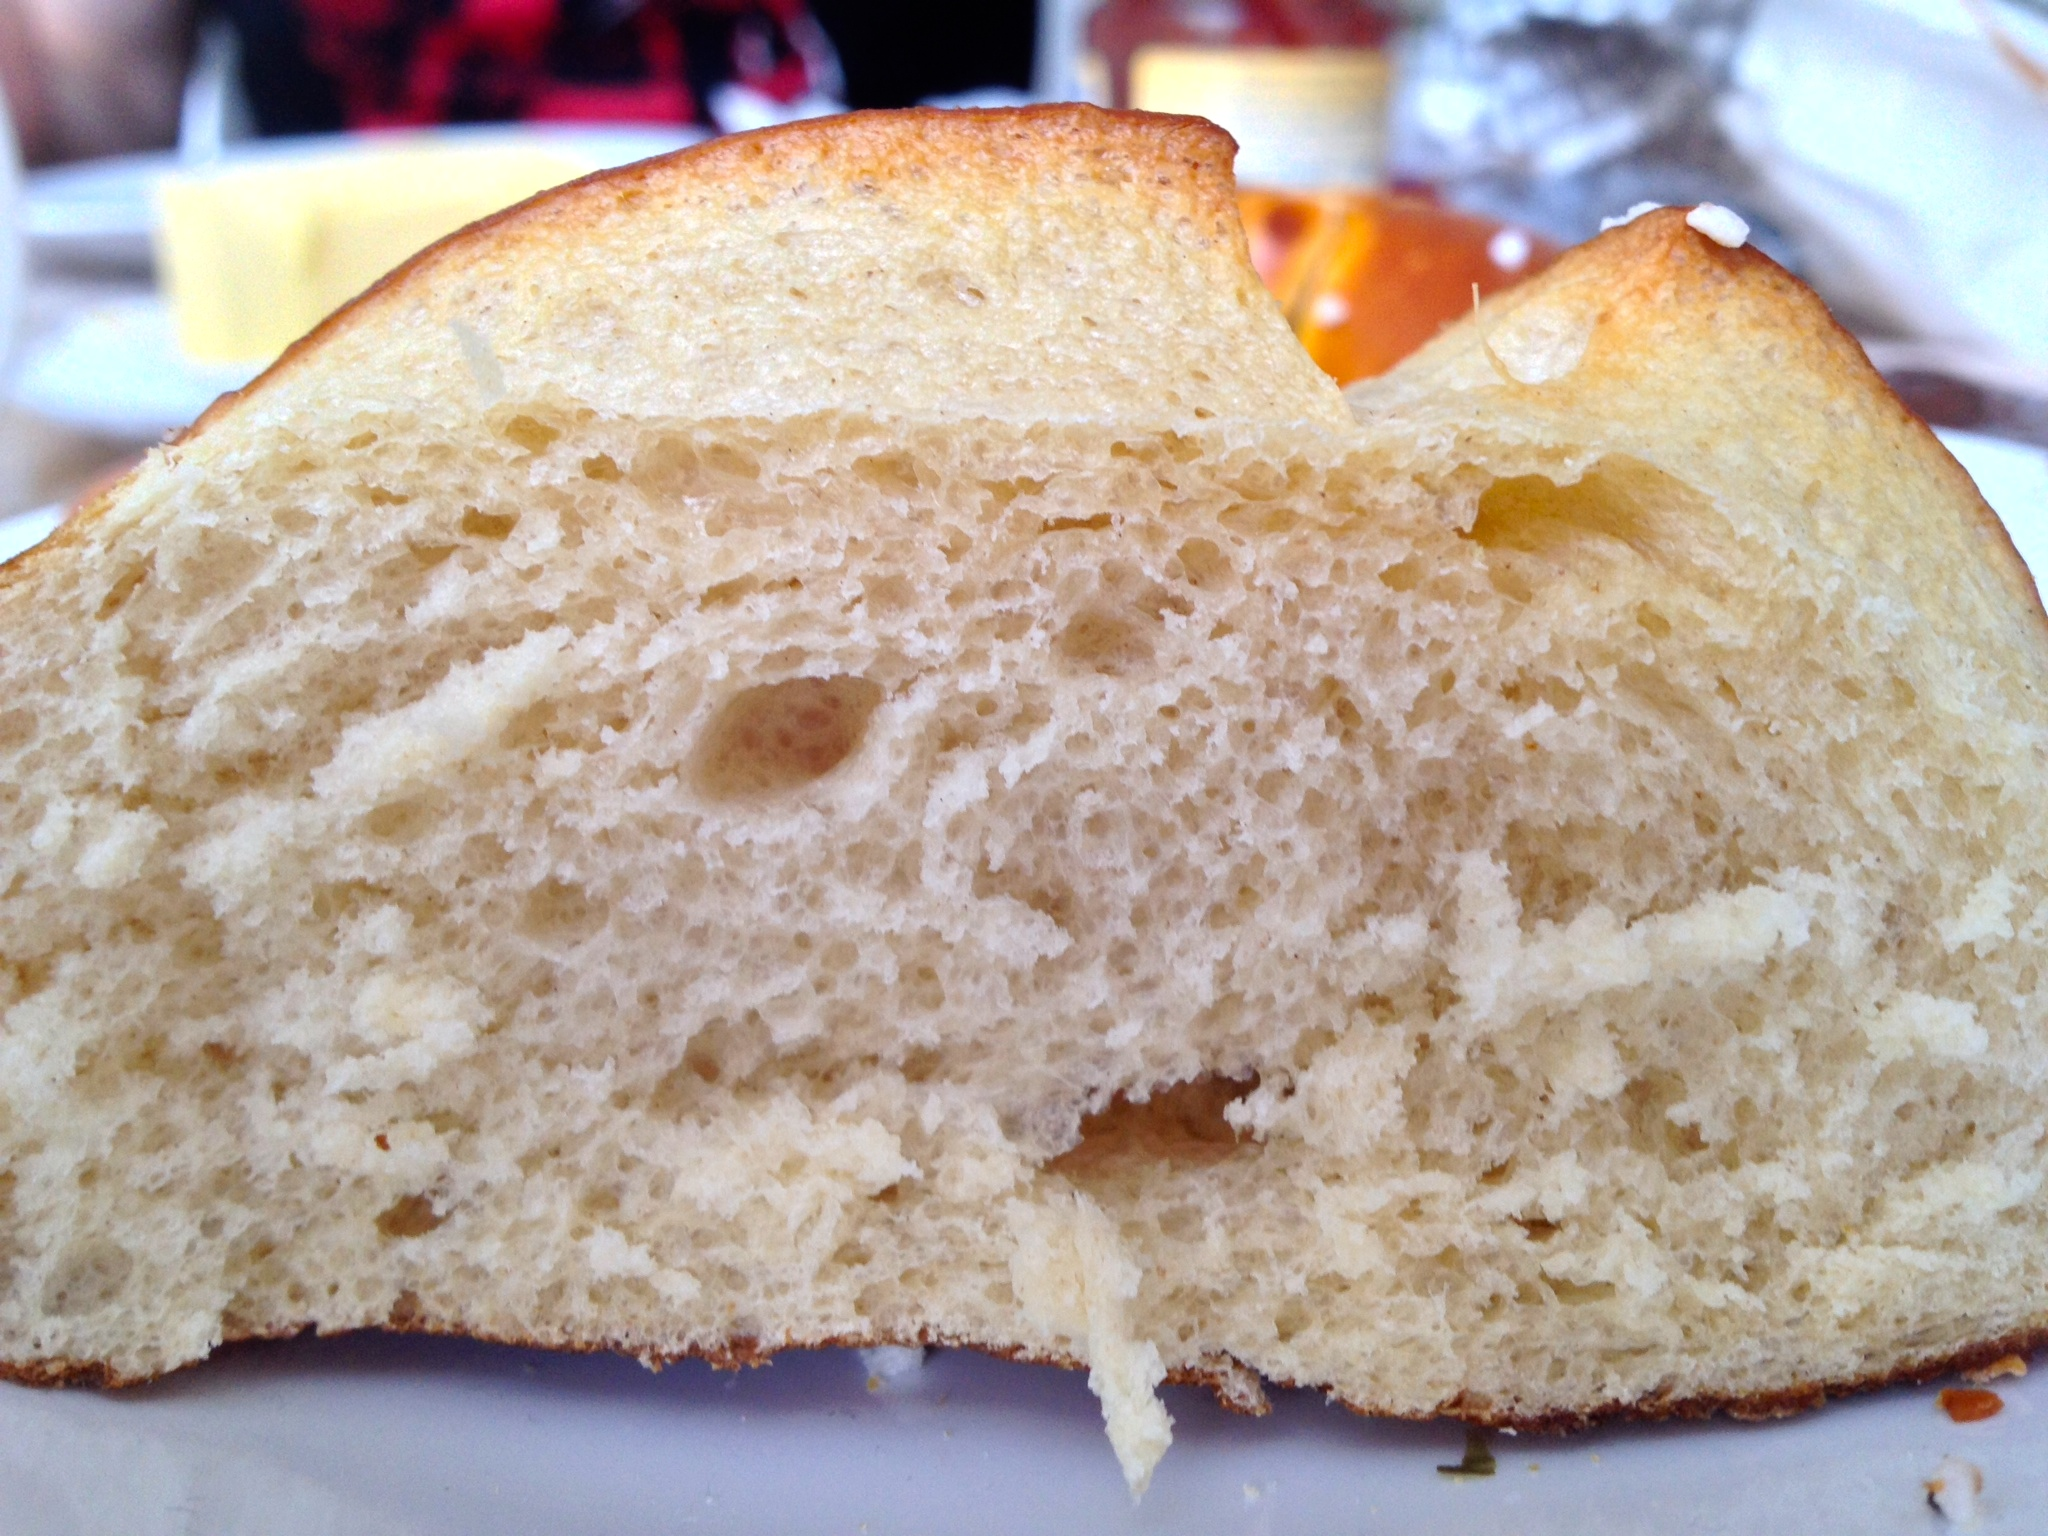 Inside a Laugenbrötchen. Note the crispy crust and soft center.